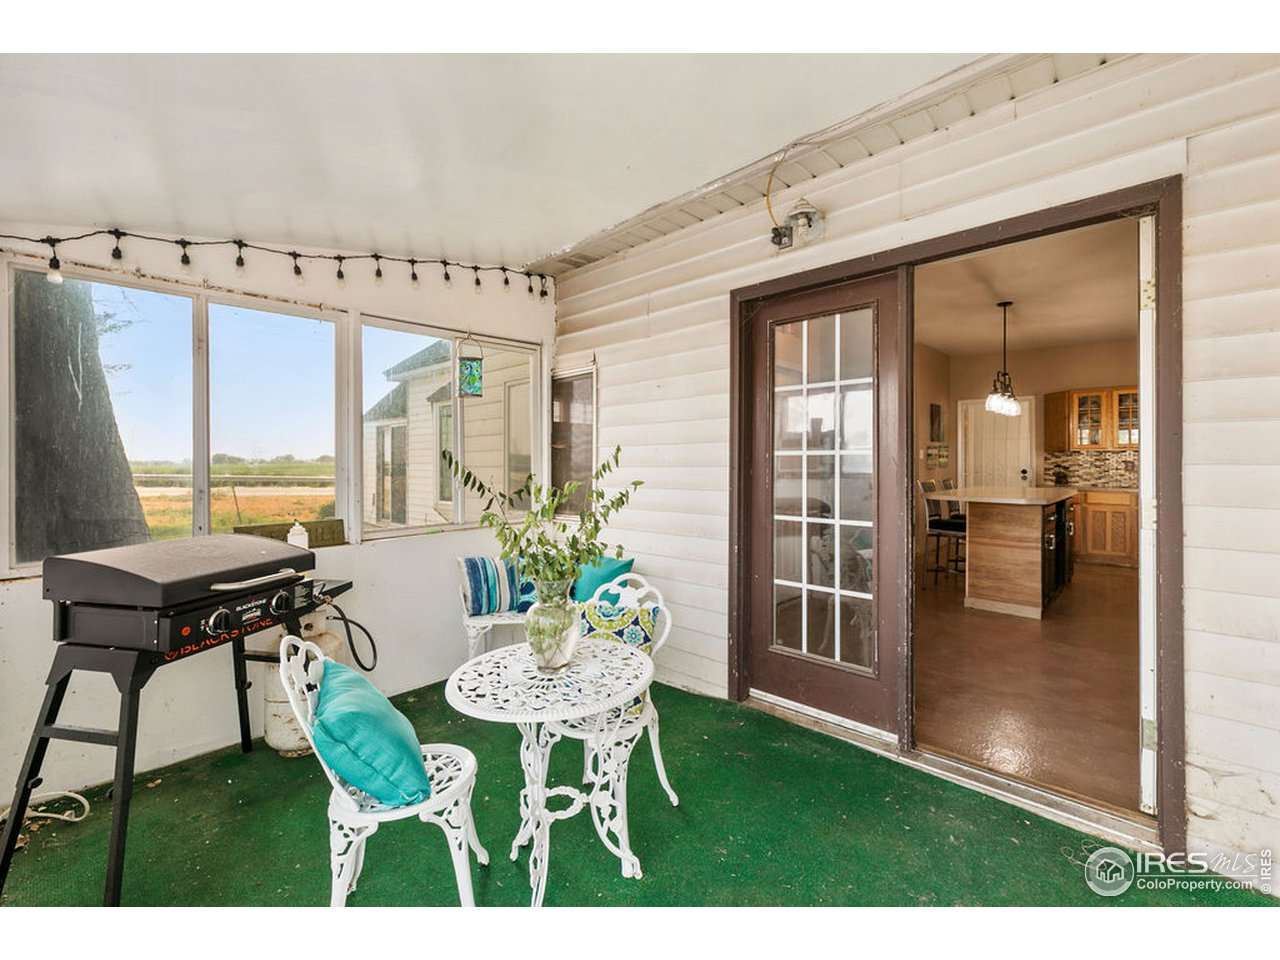 Just off the kitchen is a nice covered patio and the main entrance to the home.